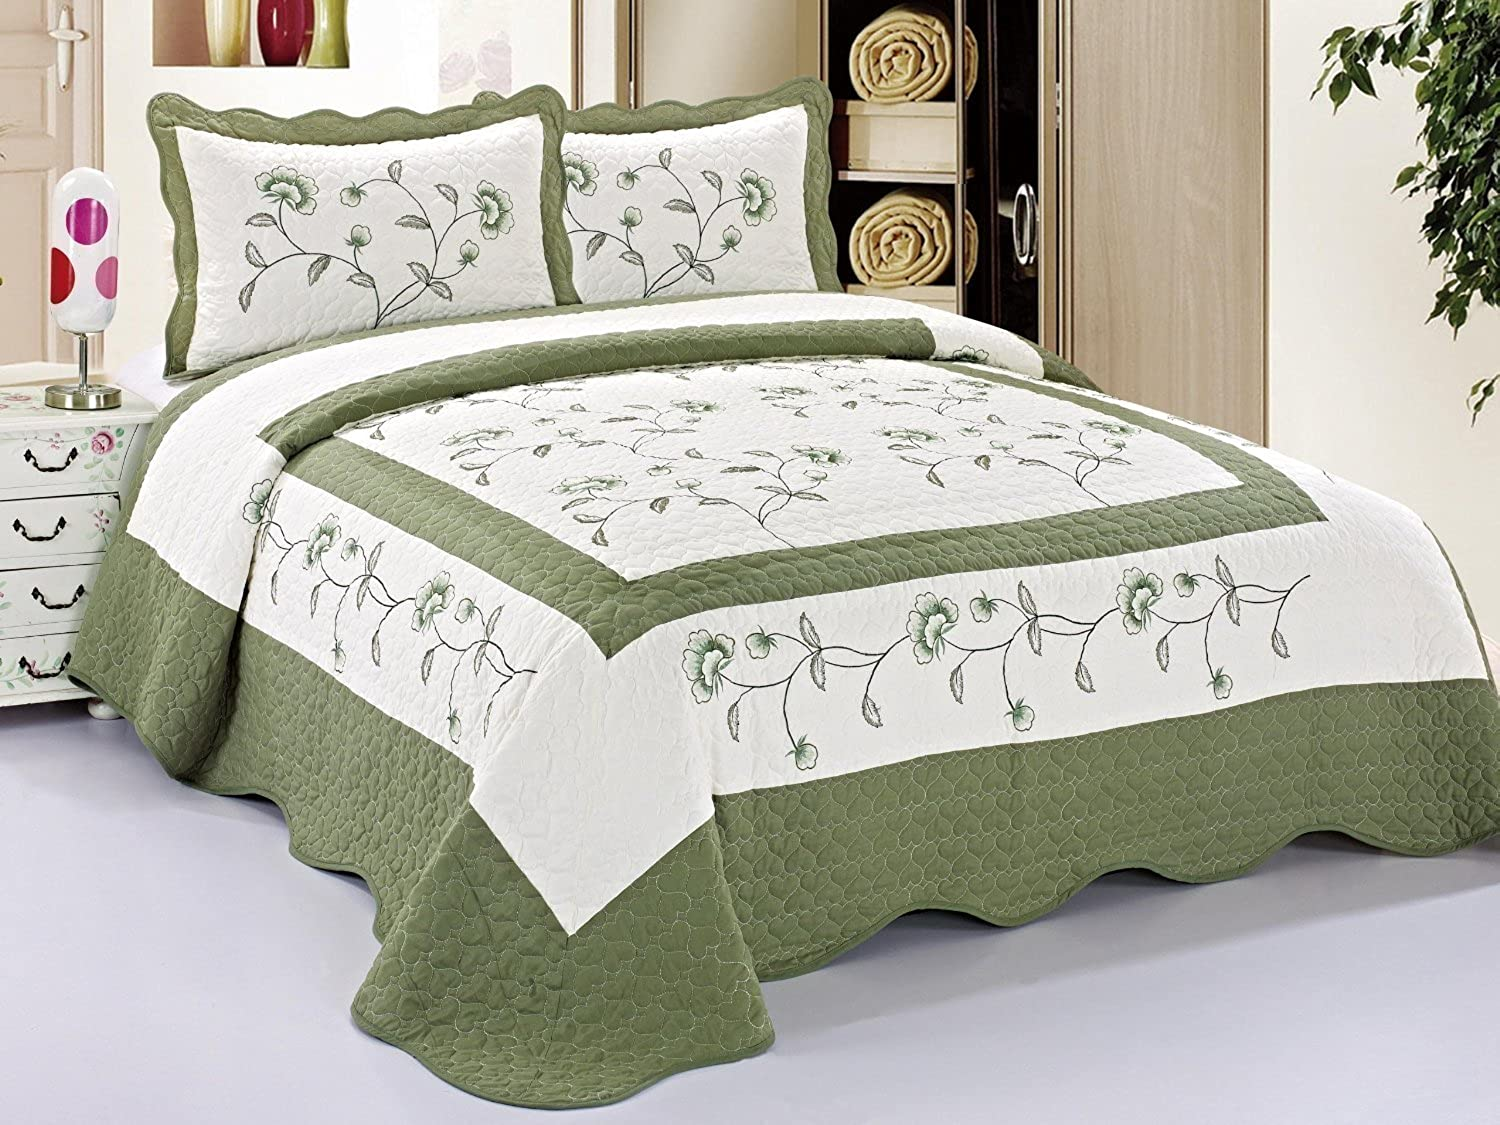 3pcs High Quality Fully Quilted Embroidery Quilts Bedspread Bed Coverlets Cover Set , Queen King (Beige SageGreen)